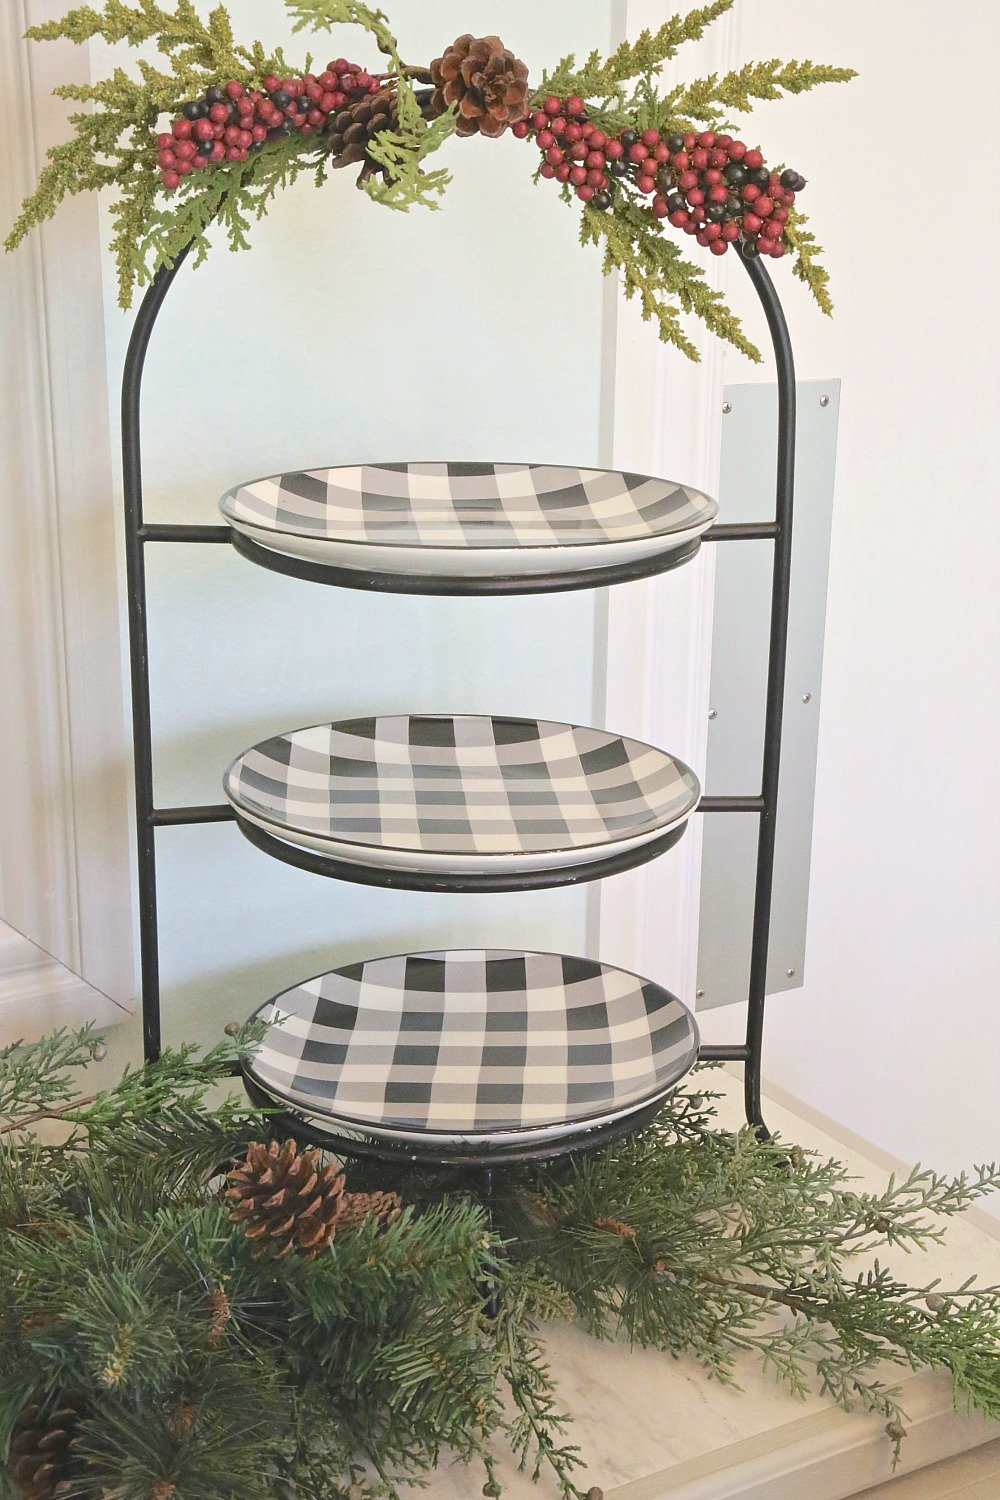 Tiered serving stand with plates